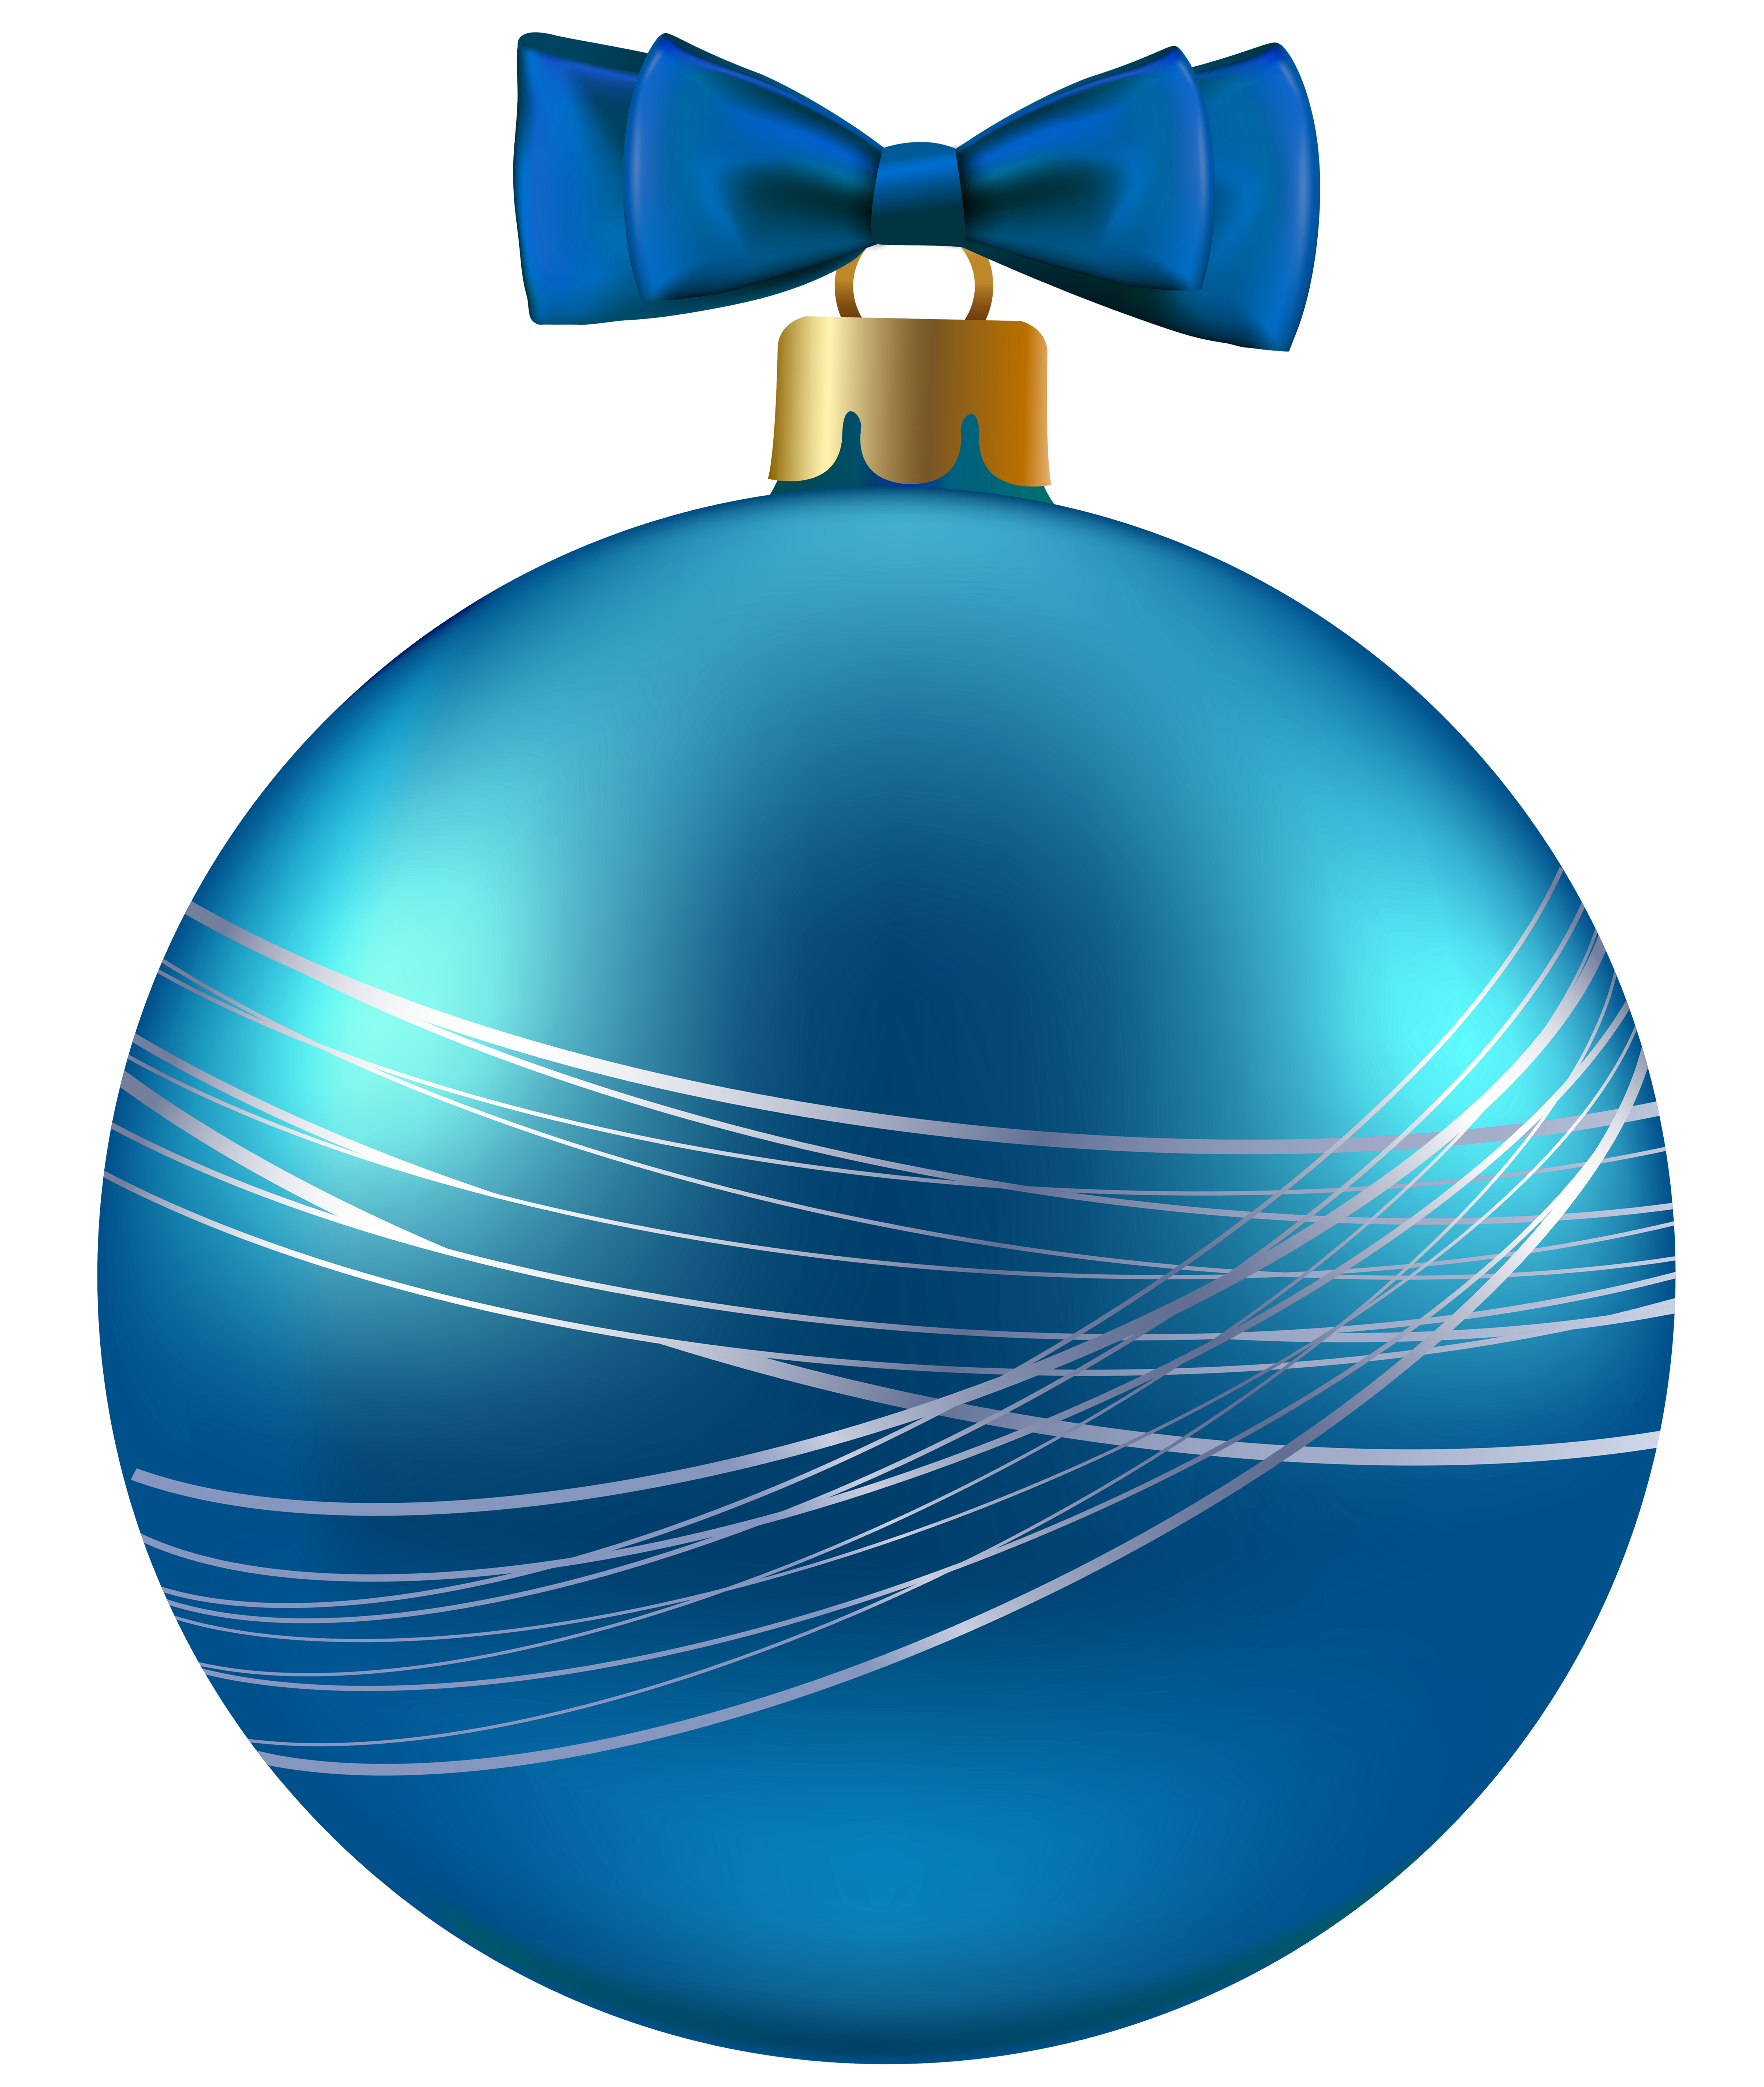 Blue Christmas Ornament PNG Clipart Image.